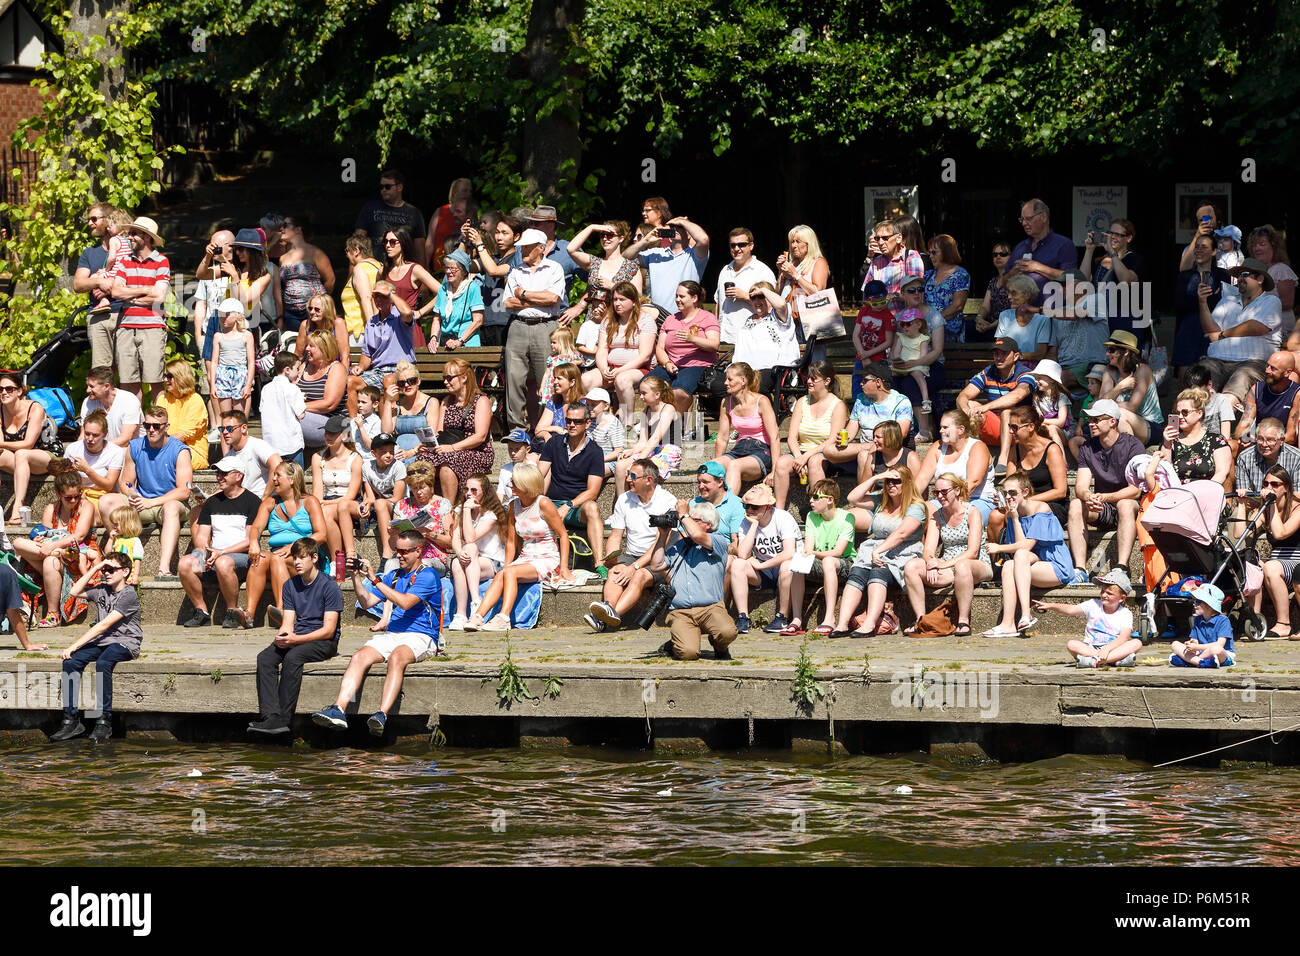 Chester, UK. 1st July 2018. Crowds enjoy the sunshine at The Groves alongside the River Dee while watching the annual charity raft race. Credit: Andrew Paterson / Alamy Live News Stock Photo